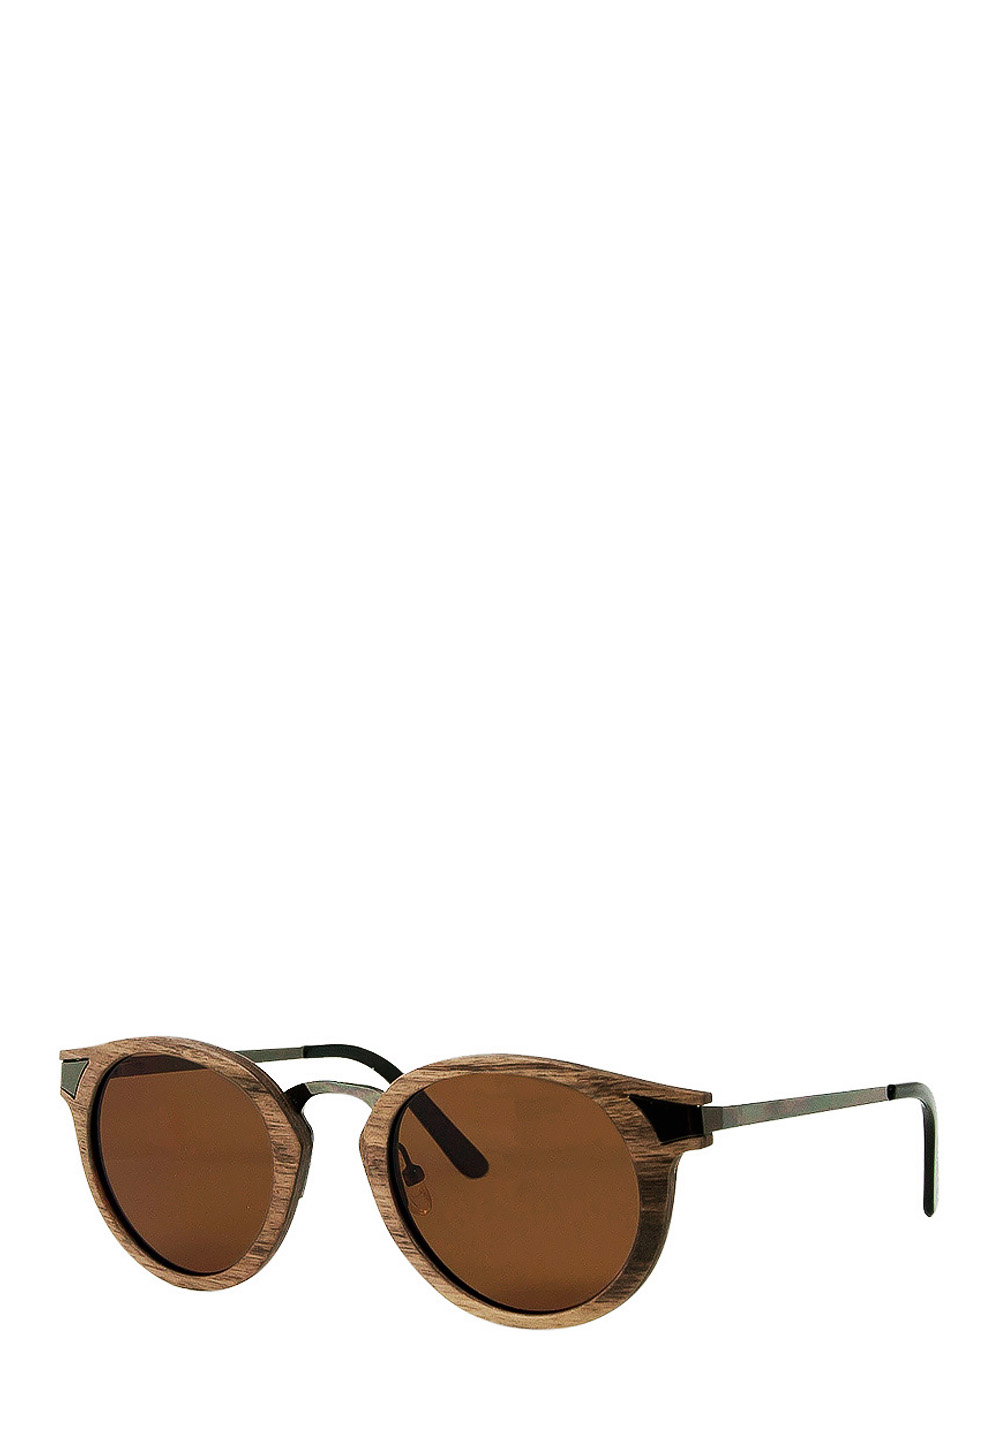 Time FOR Wood Sonnenbrille Ignis, UV 400, braun